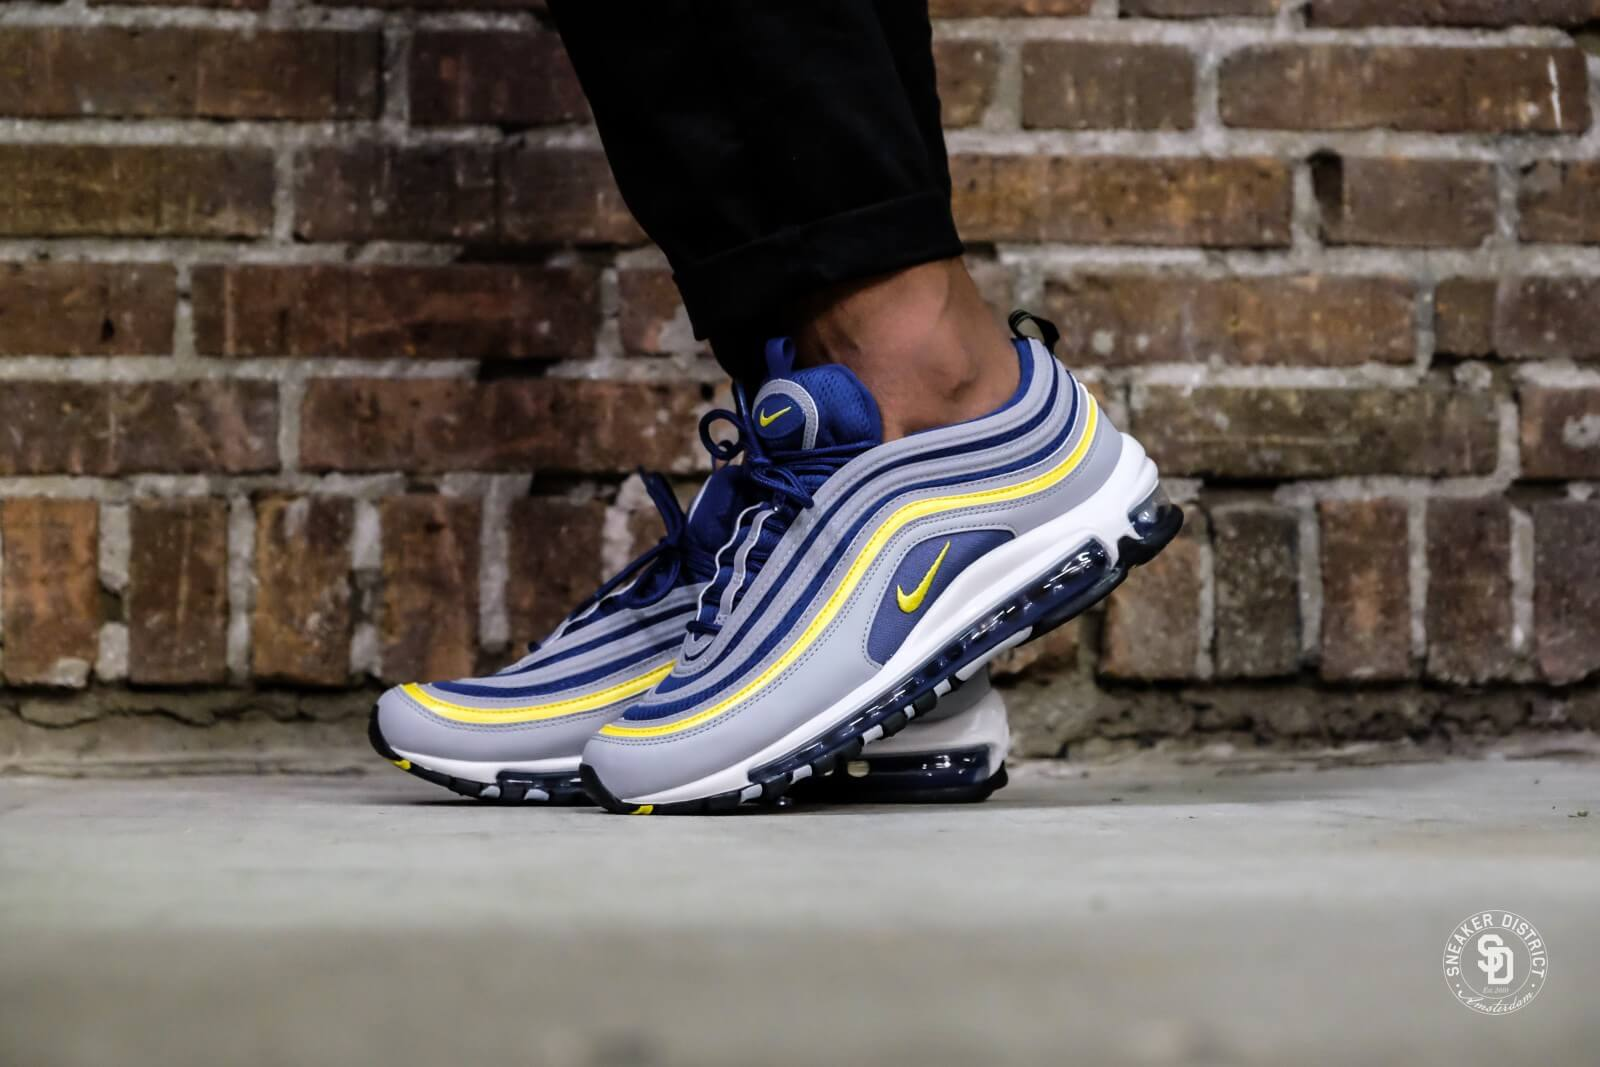 c85aa7a340 air max 97 wolf grey tour yellow nz Free delivery!